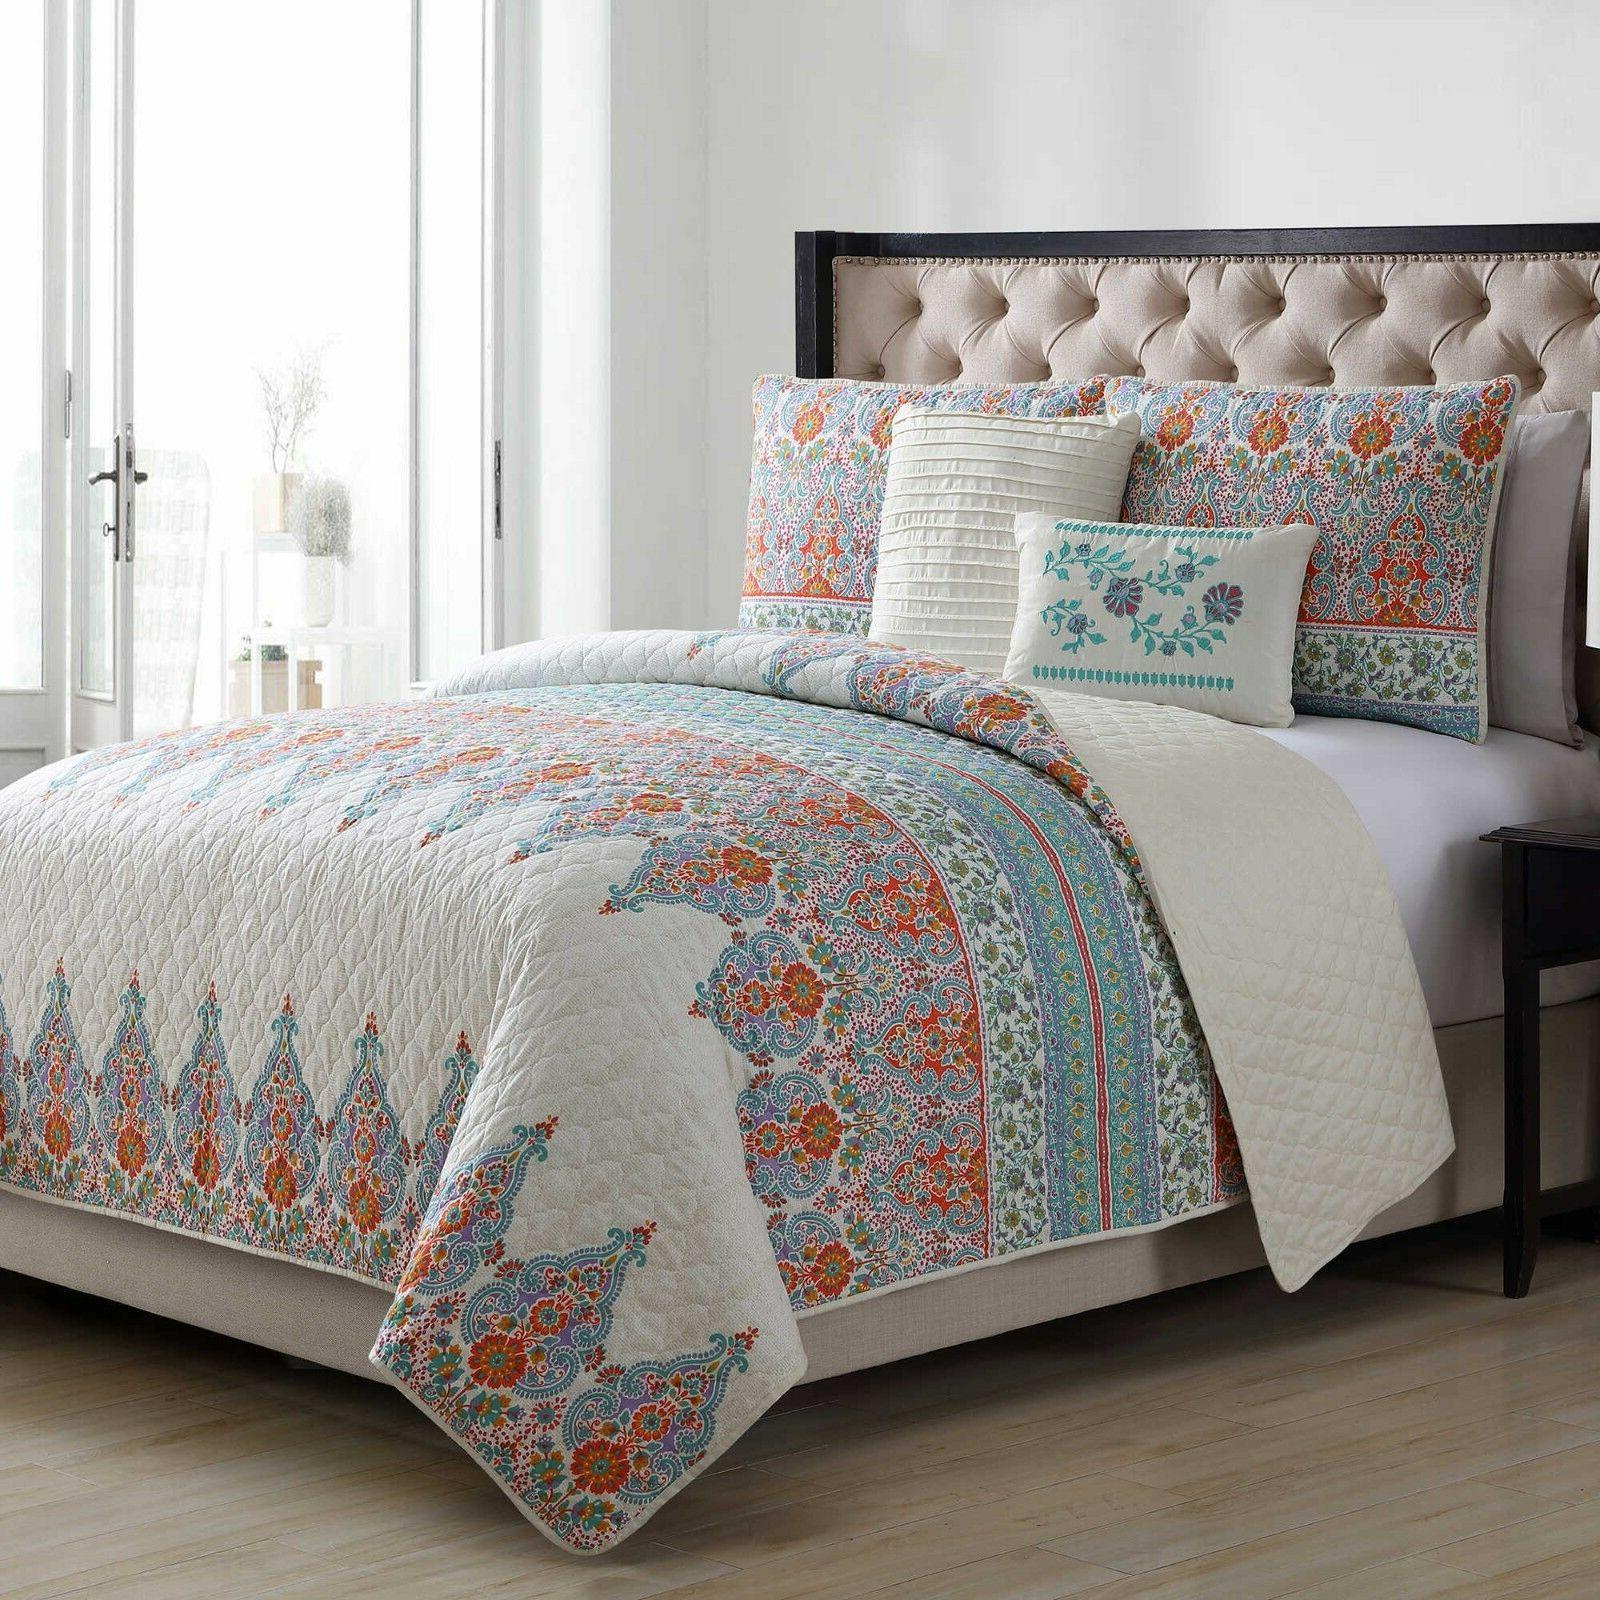 King Quilt Set VCNY Home Andrea Reversible in Jade/Orange 5